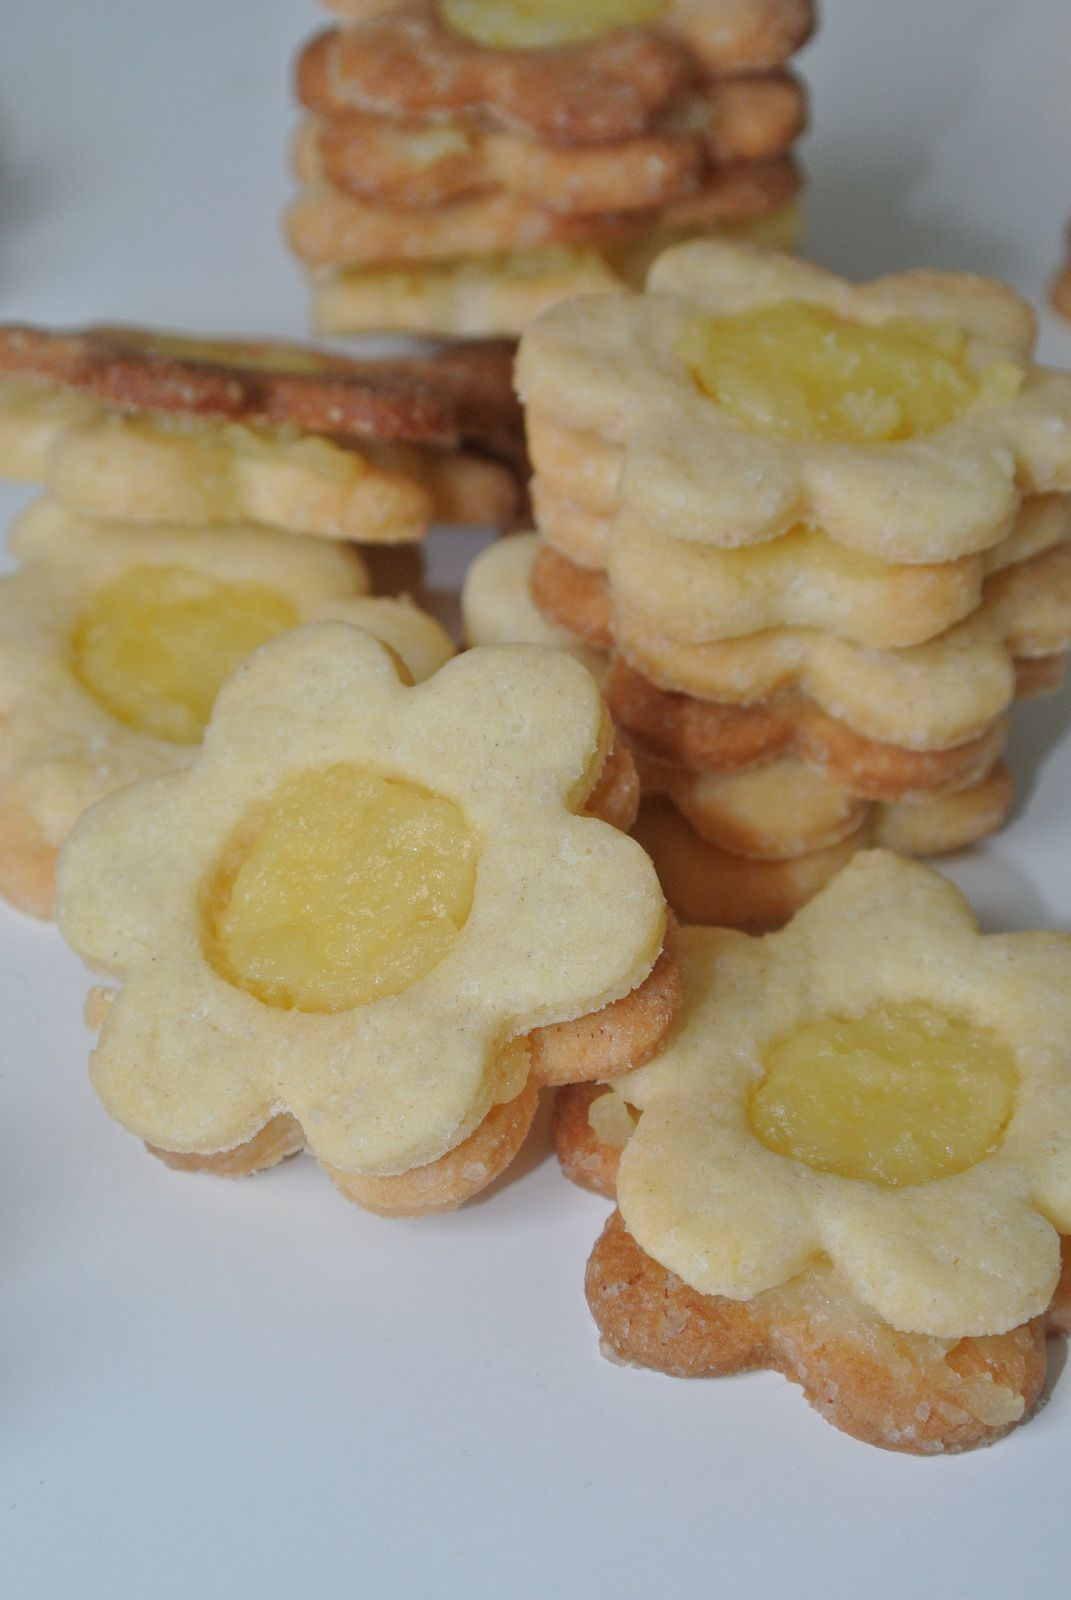 Biscuits au lemon curd